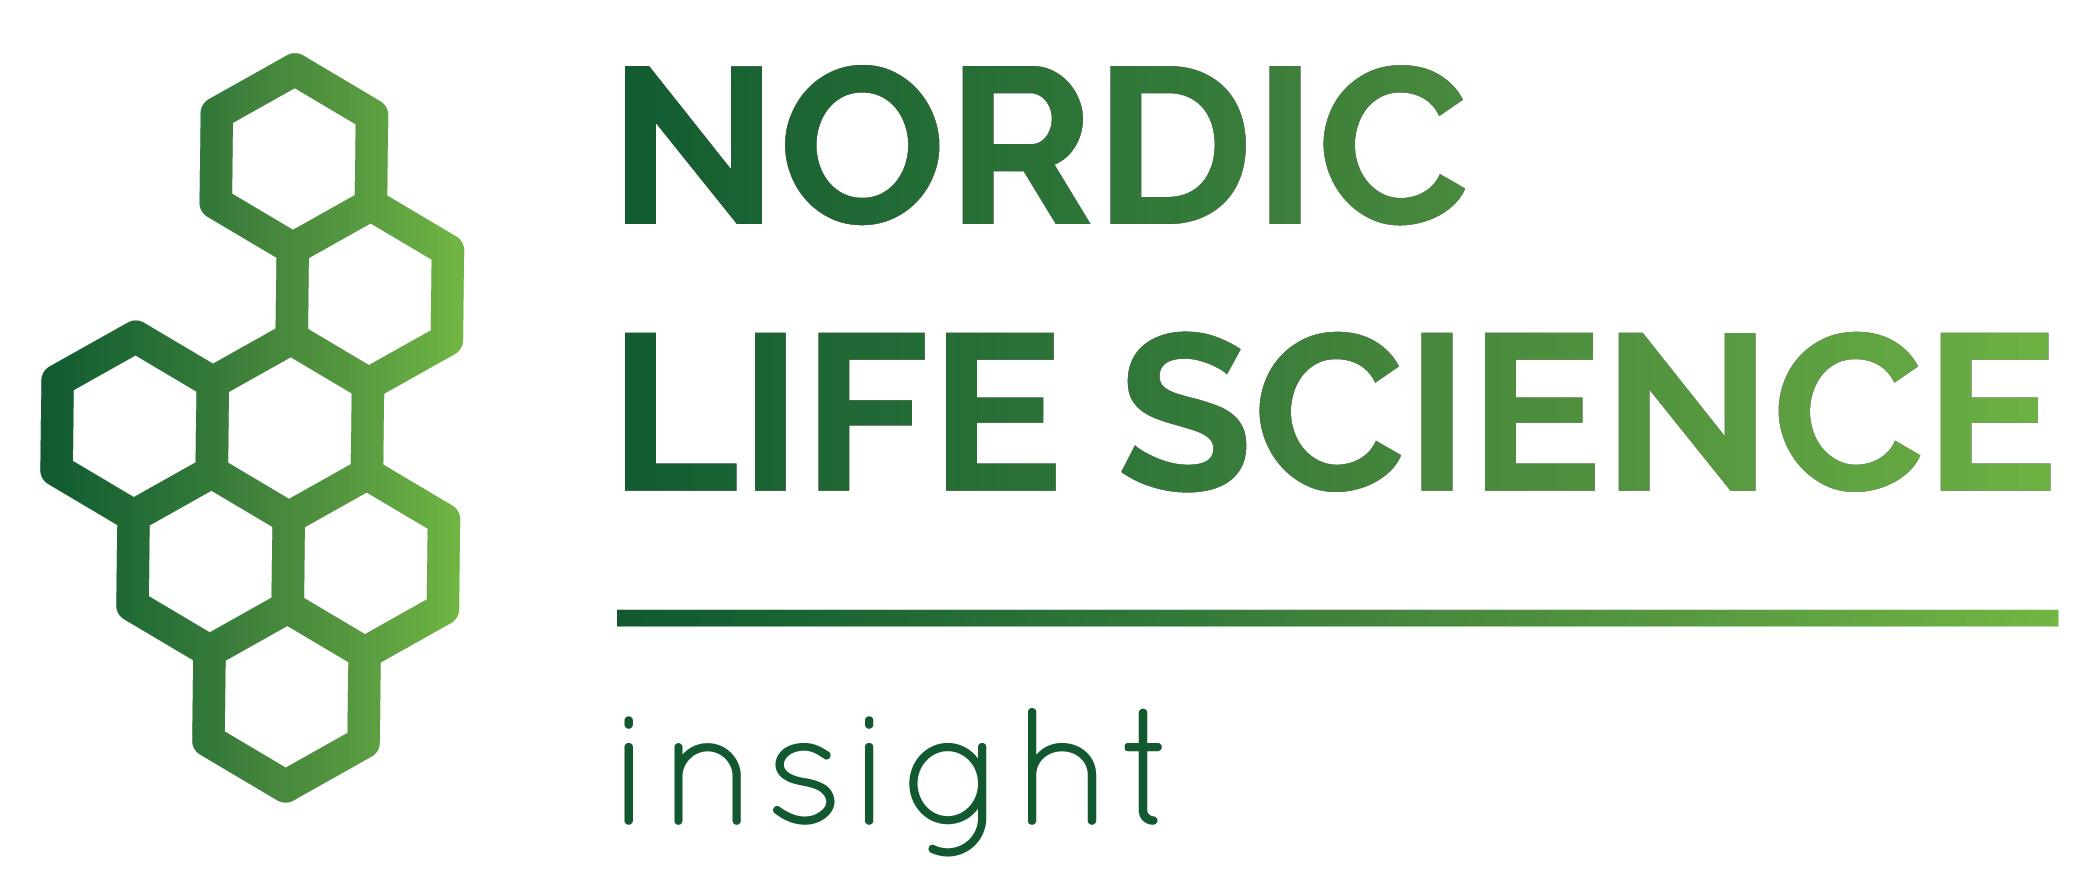 Nordic Life Science Insight Brand Logo